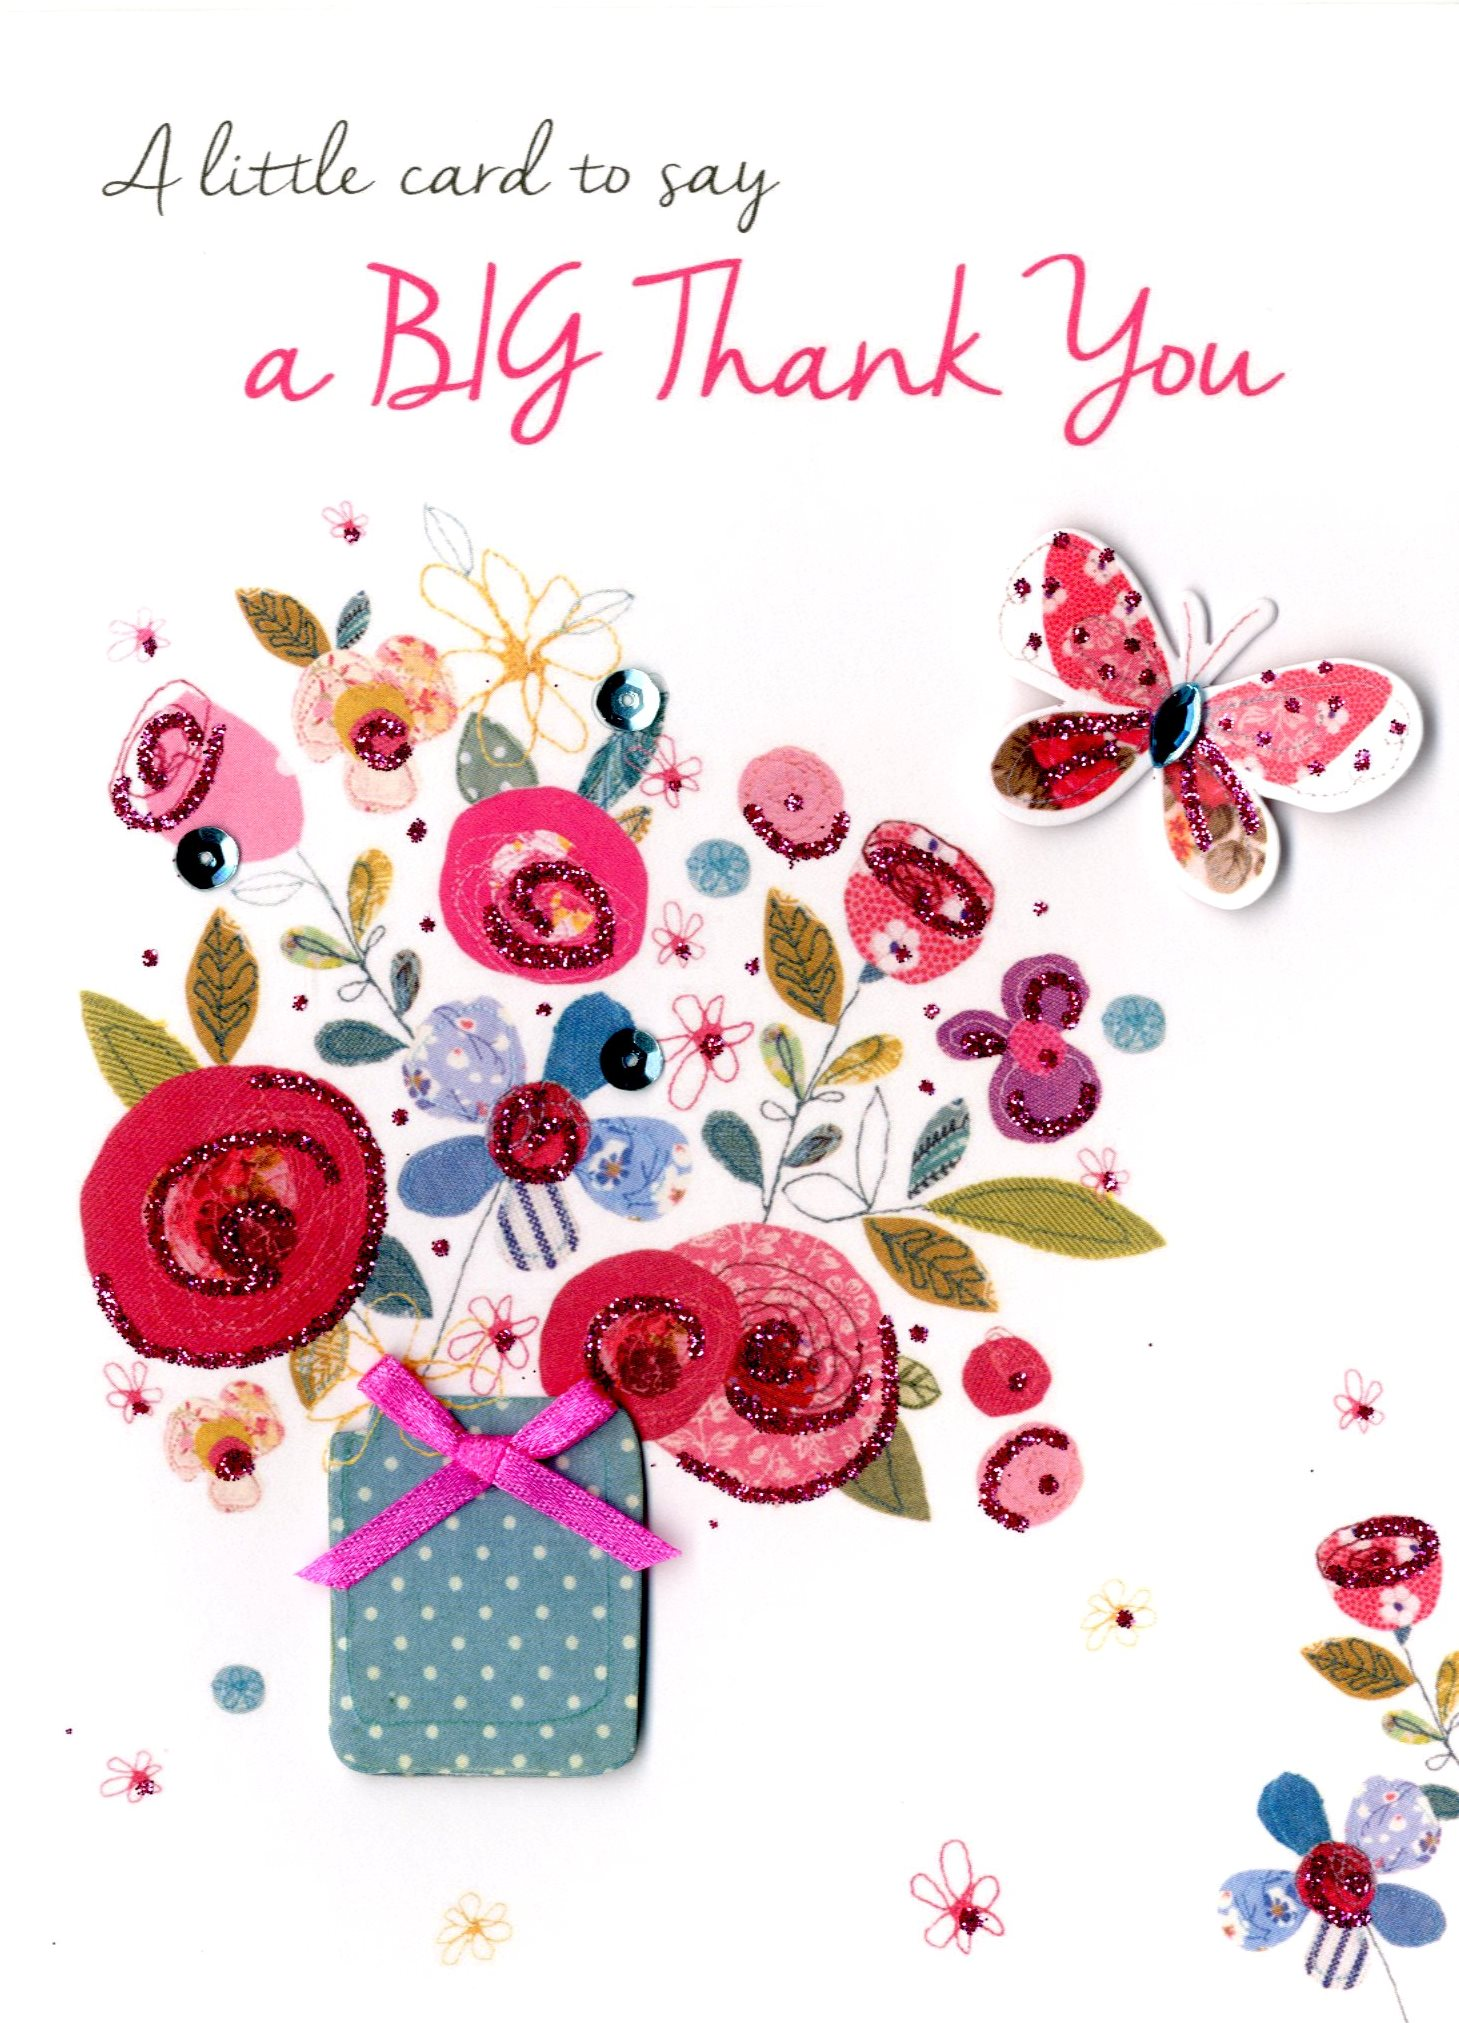 A Big Thank You Greeting Card Second Nature Just To Say Cards